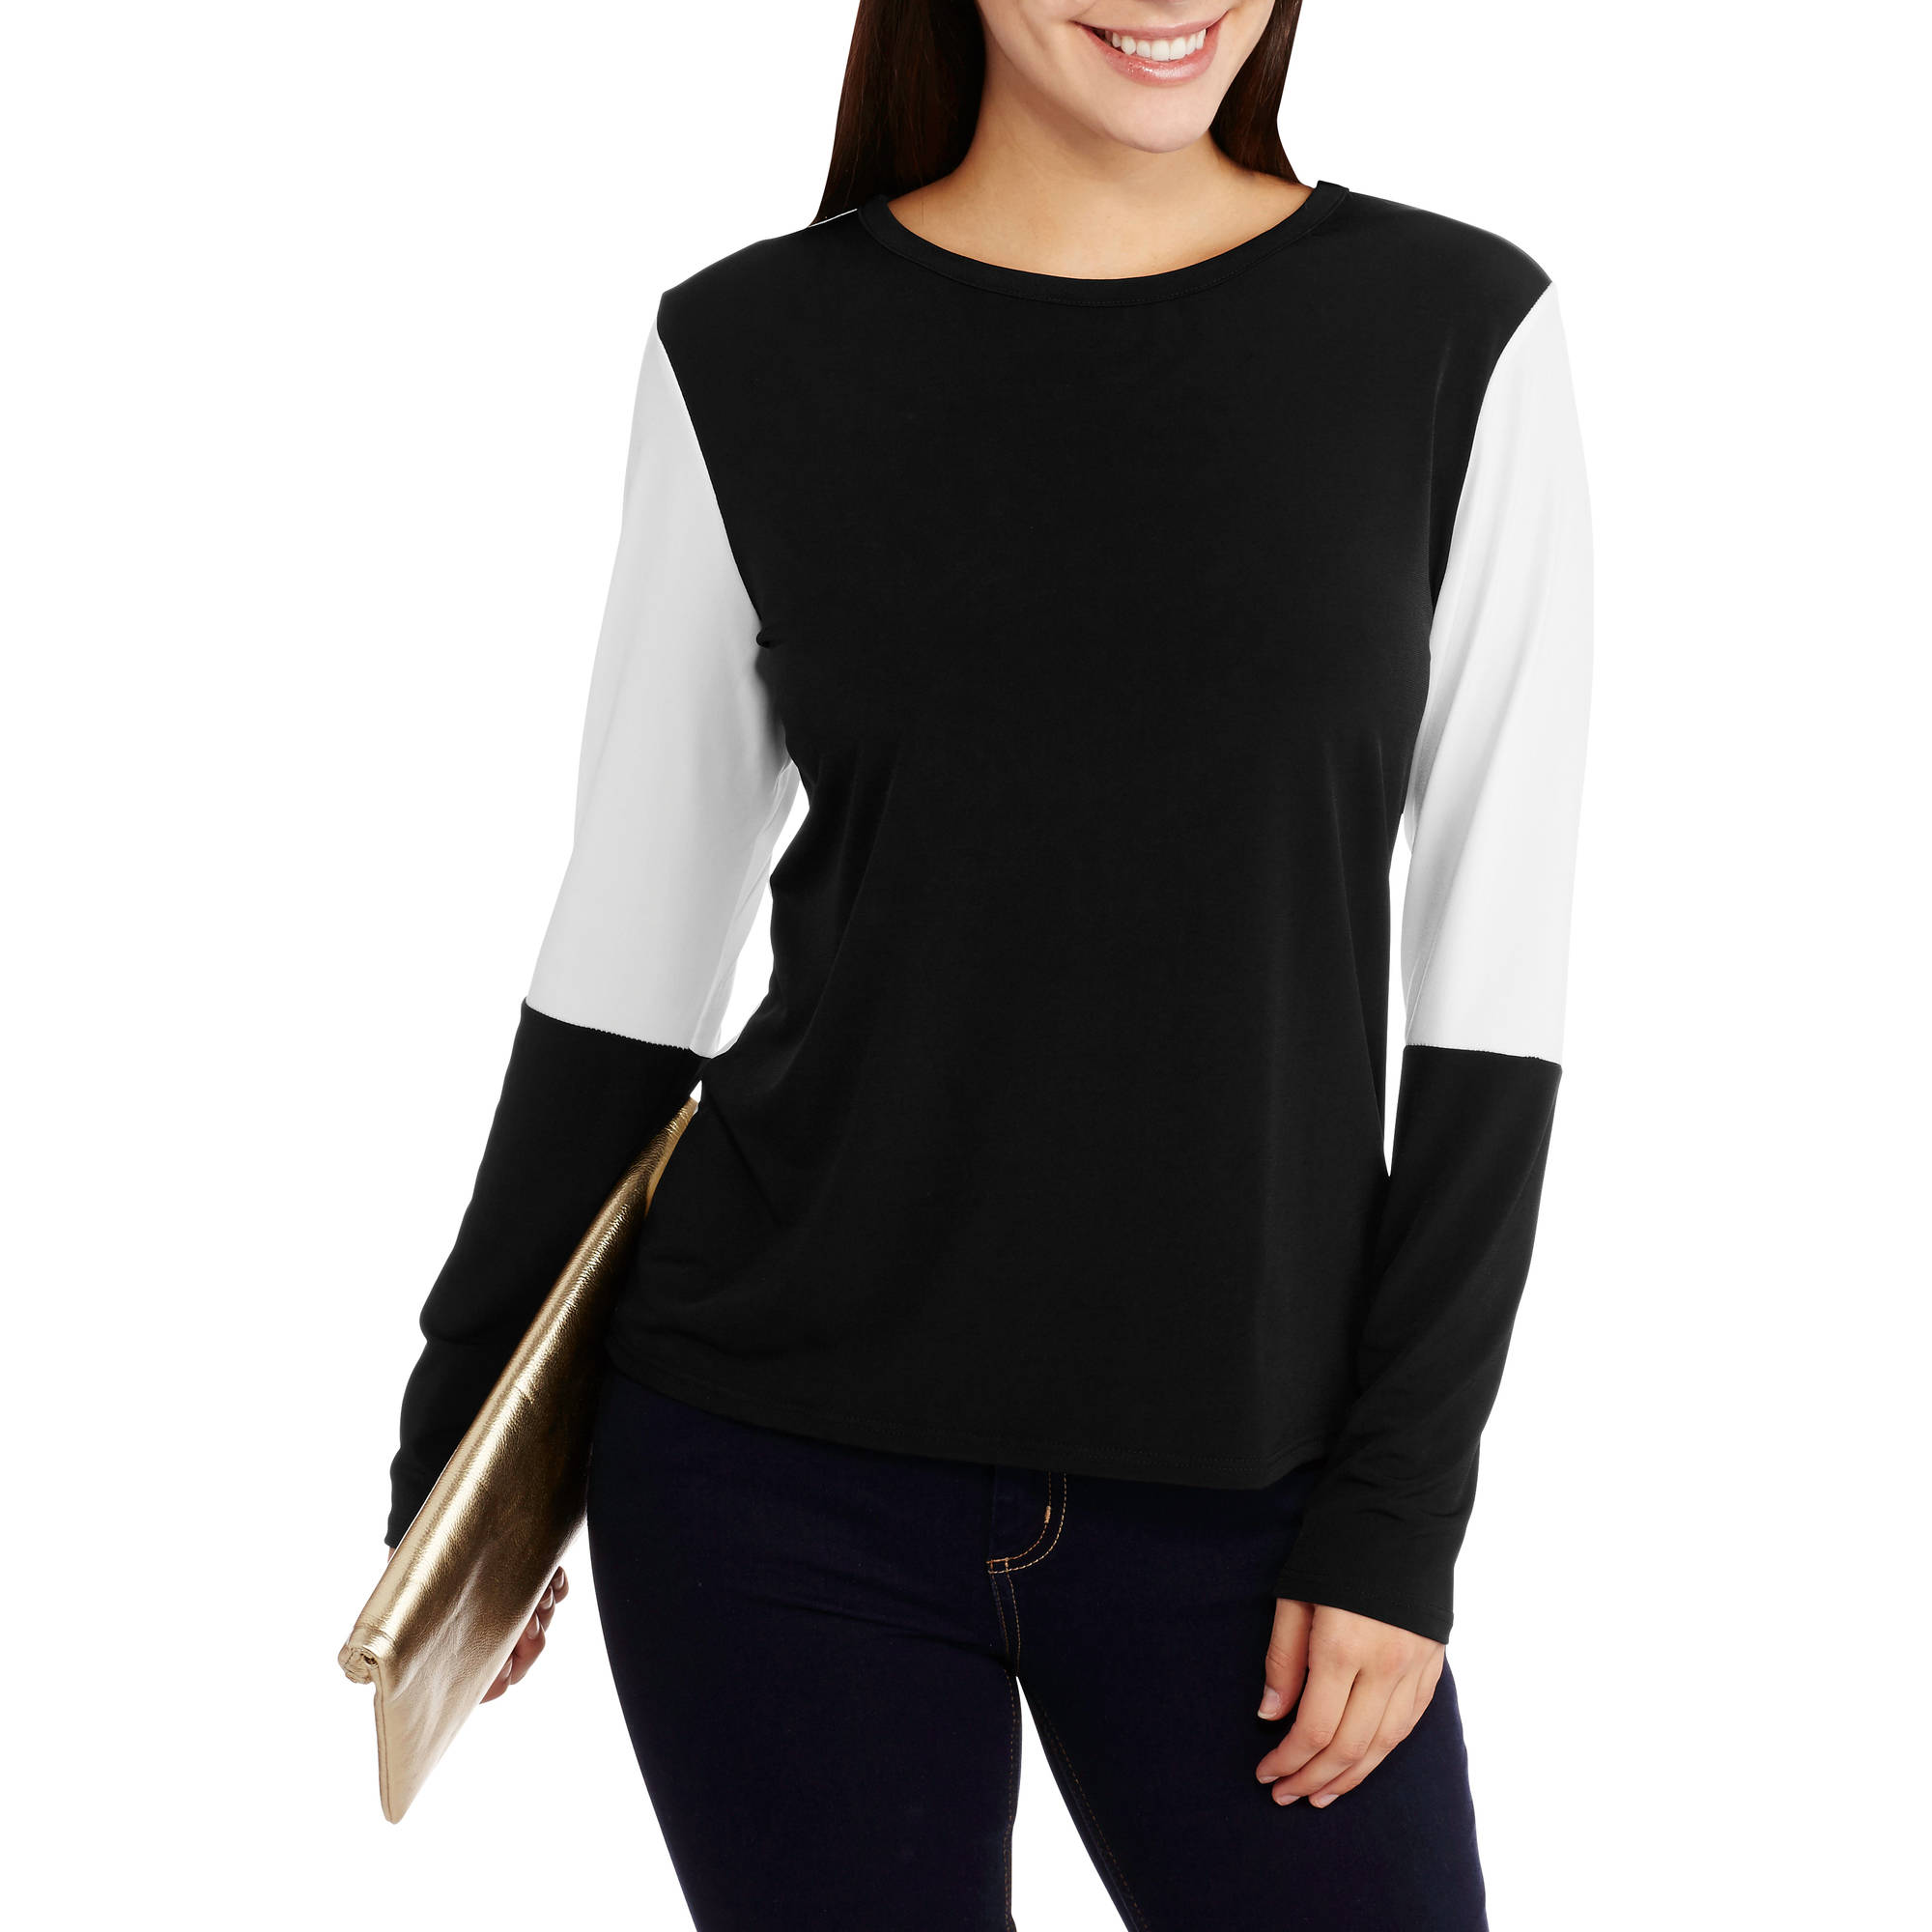 Double Click Women's Colorblock Cross Back Top